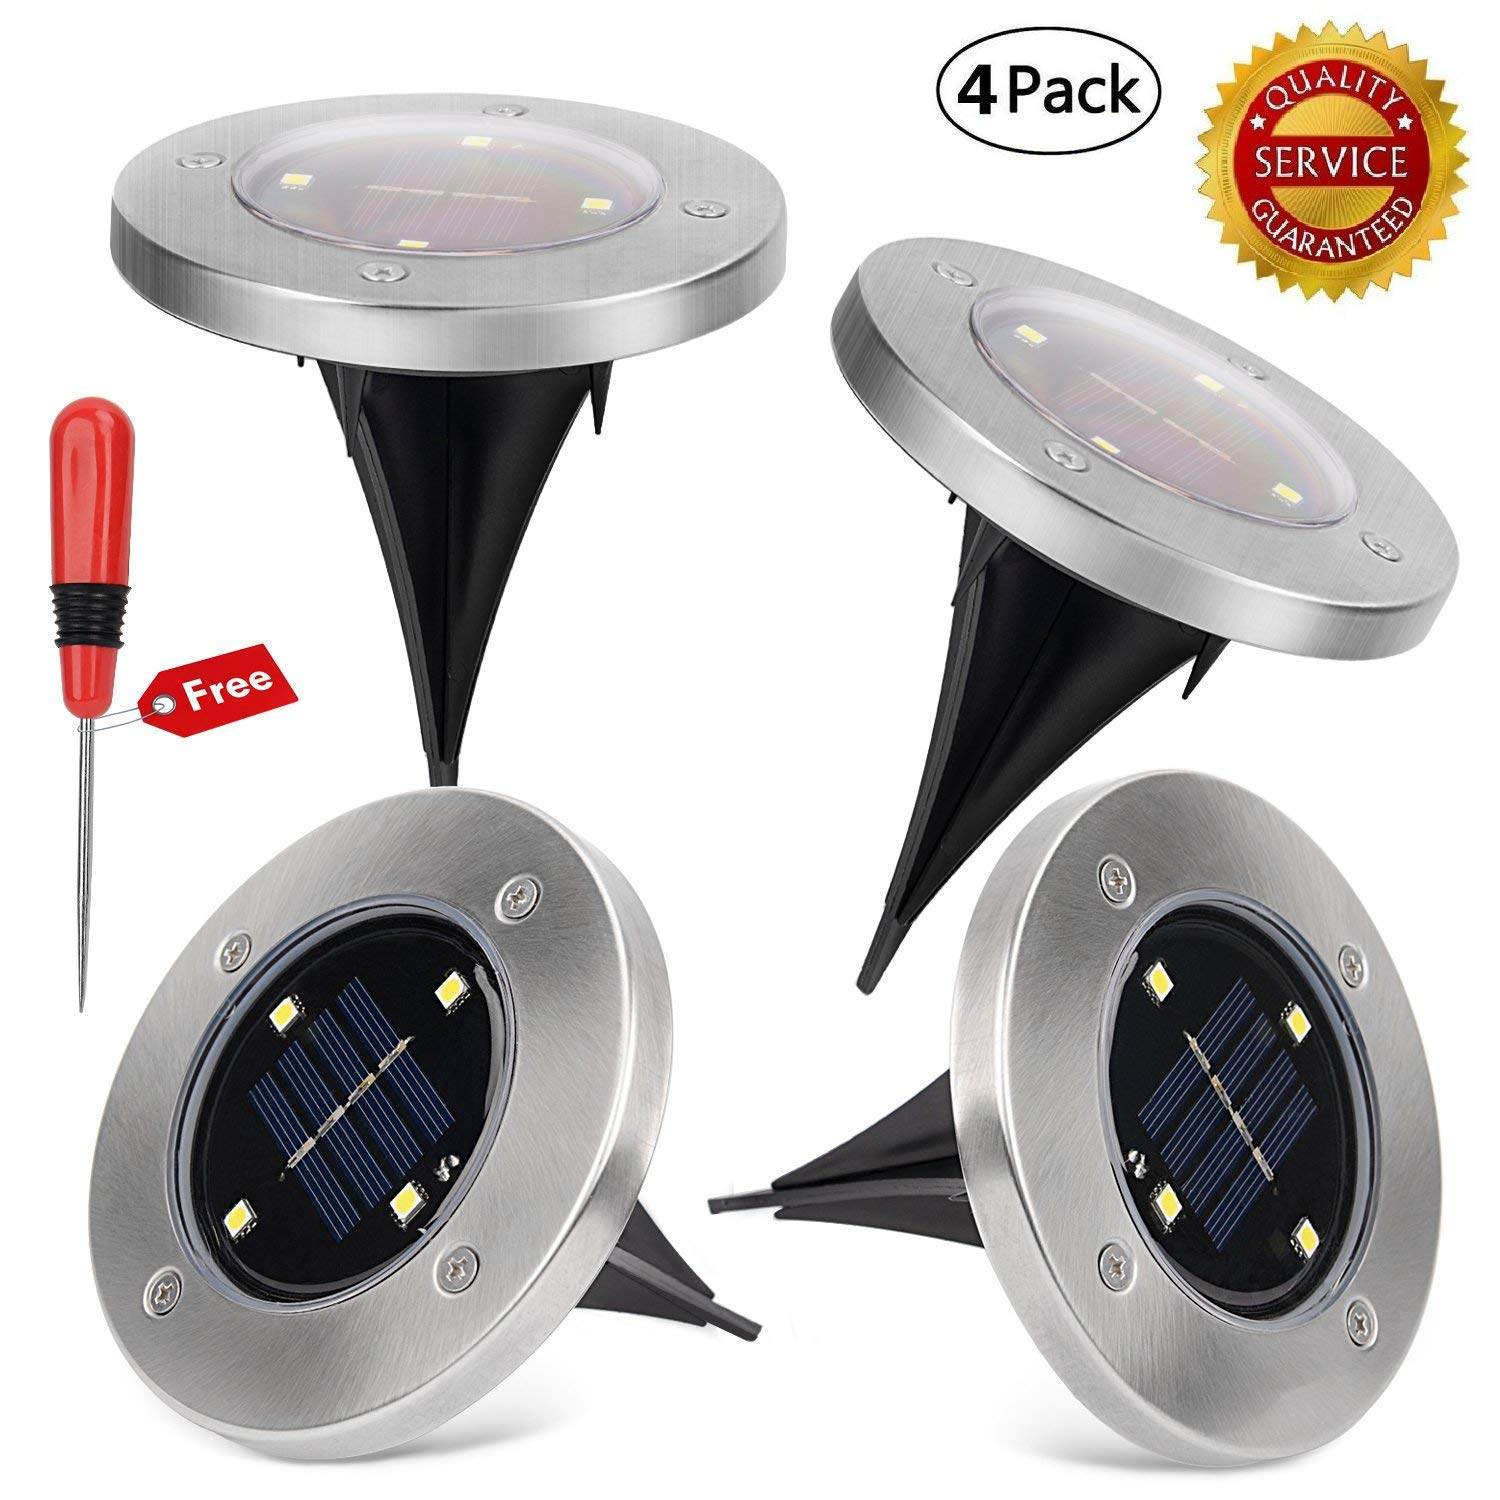 Yesker Solar Powered Ground Light, Pathonor Waterproof Garden Pathway Lights With 4 LEDs for Home, Yard, Driveway, Lawn, Pack of 4 ( White )